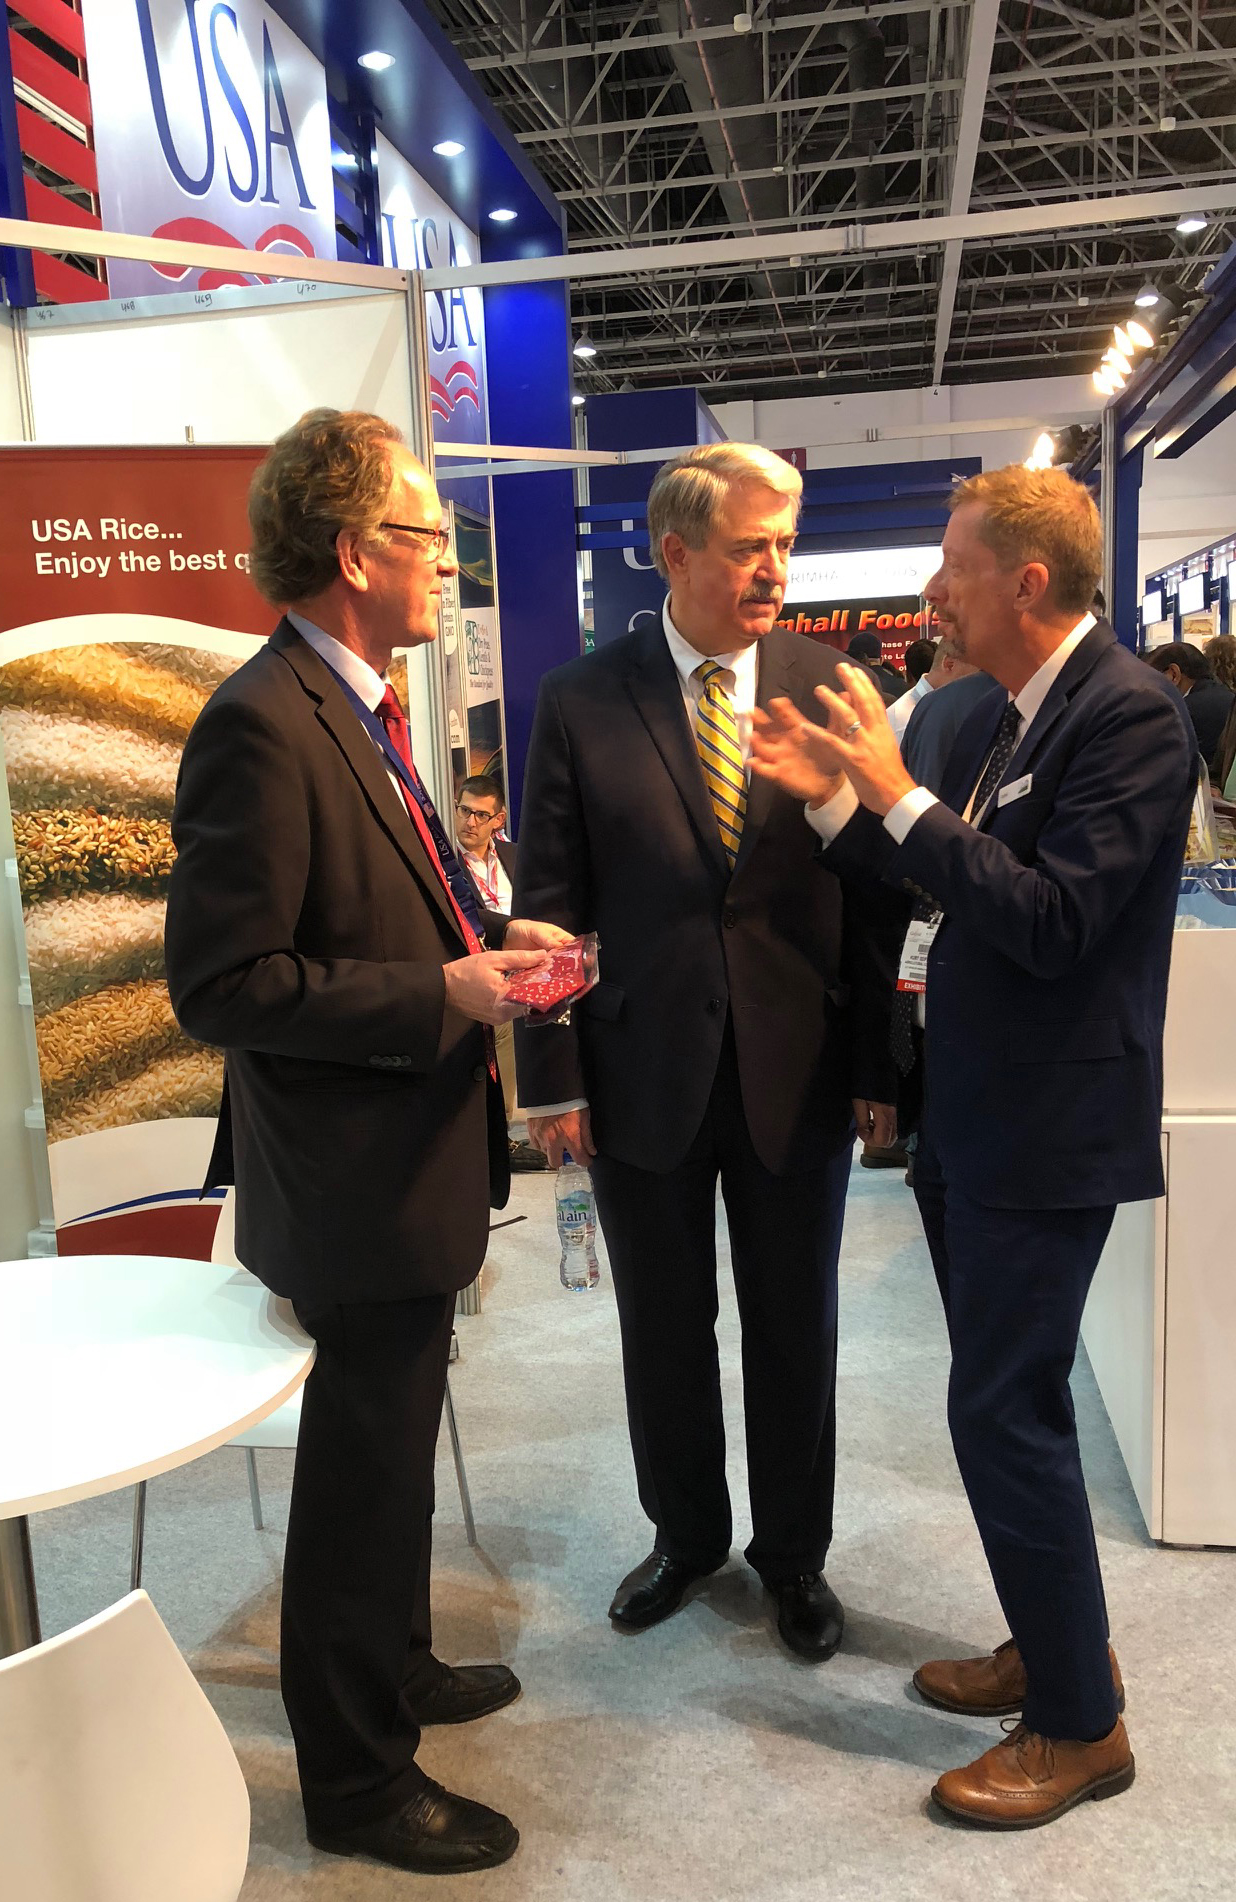 Undersecretary McKinney at USA Rice booth at Gulfood Show 2018 [image description: three men standing together talking in exhibit hall]